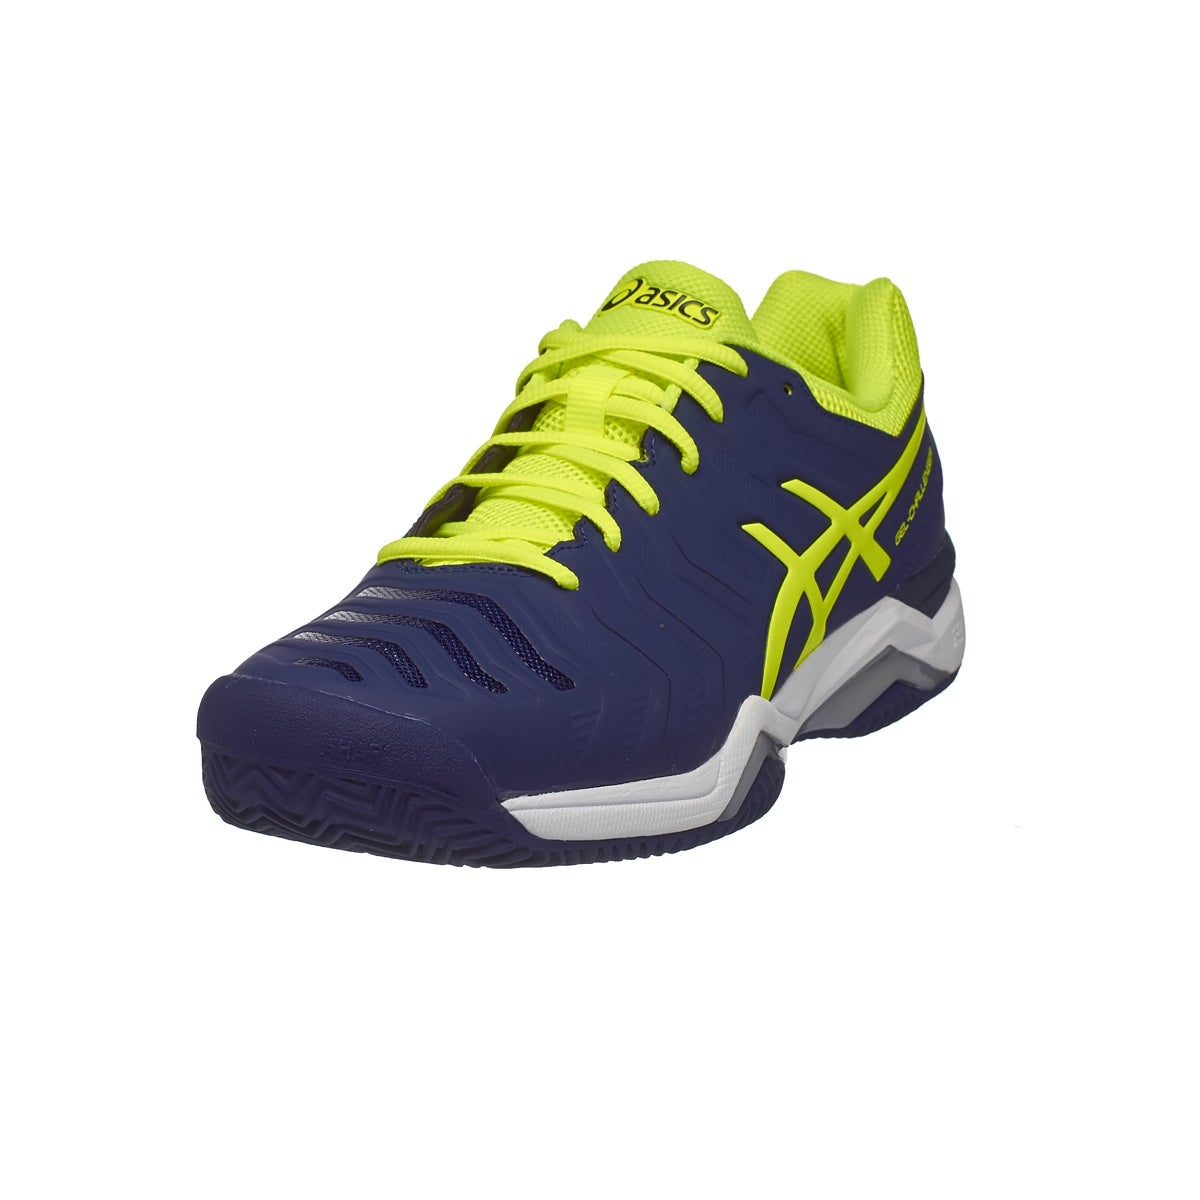 Asics Gel Challenger 11 Clay Bl/Ye/Si Men's Shoes 360° View.